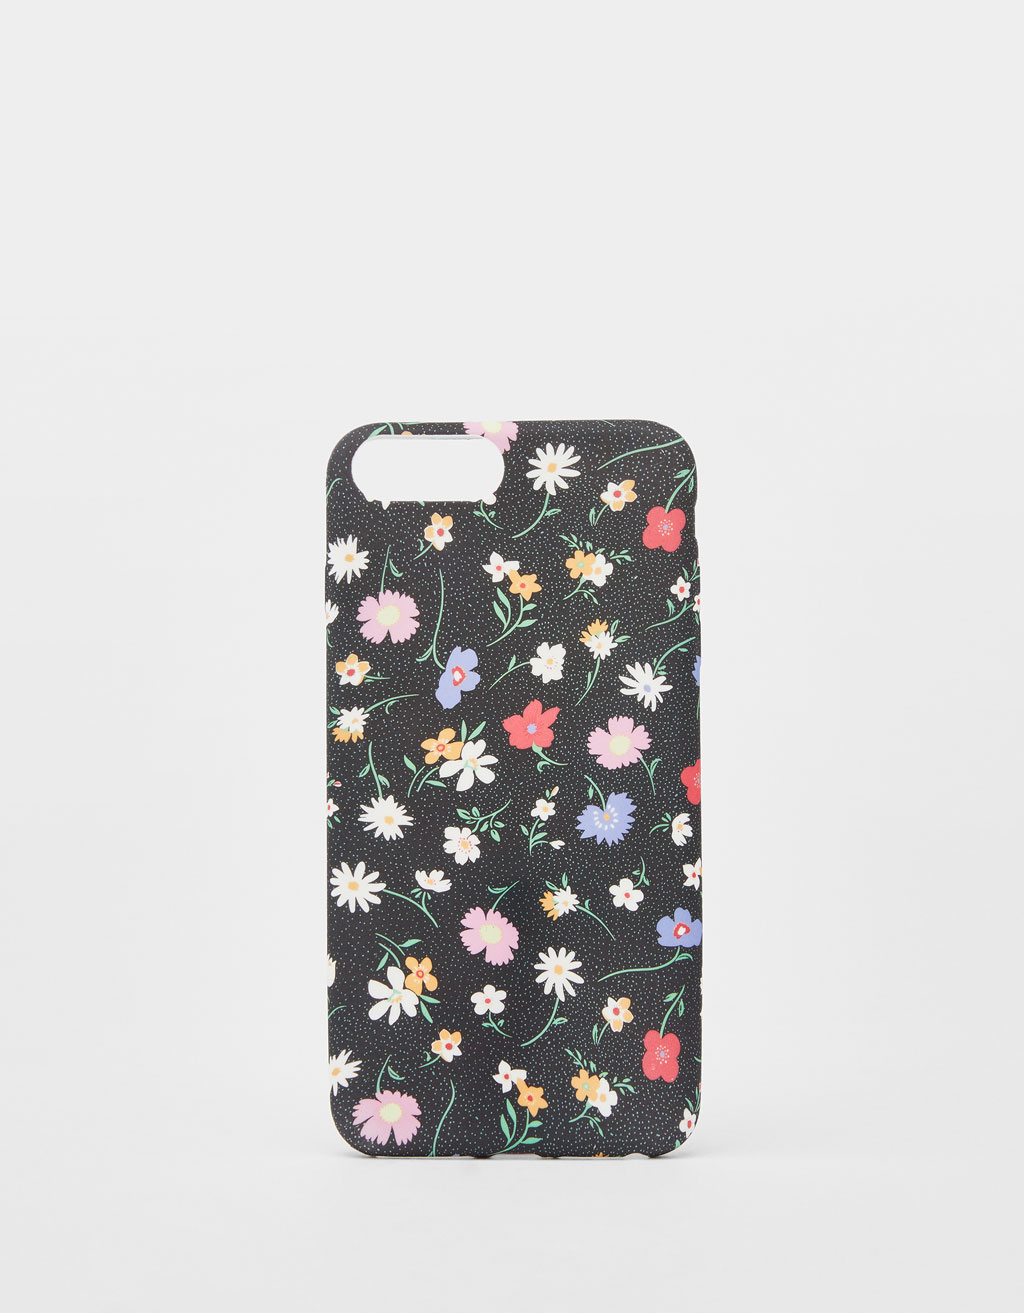 Carcasa de flores iPhone 6 plus / 7 plus / 8 plus